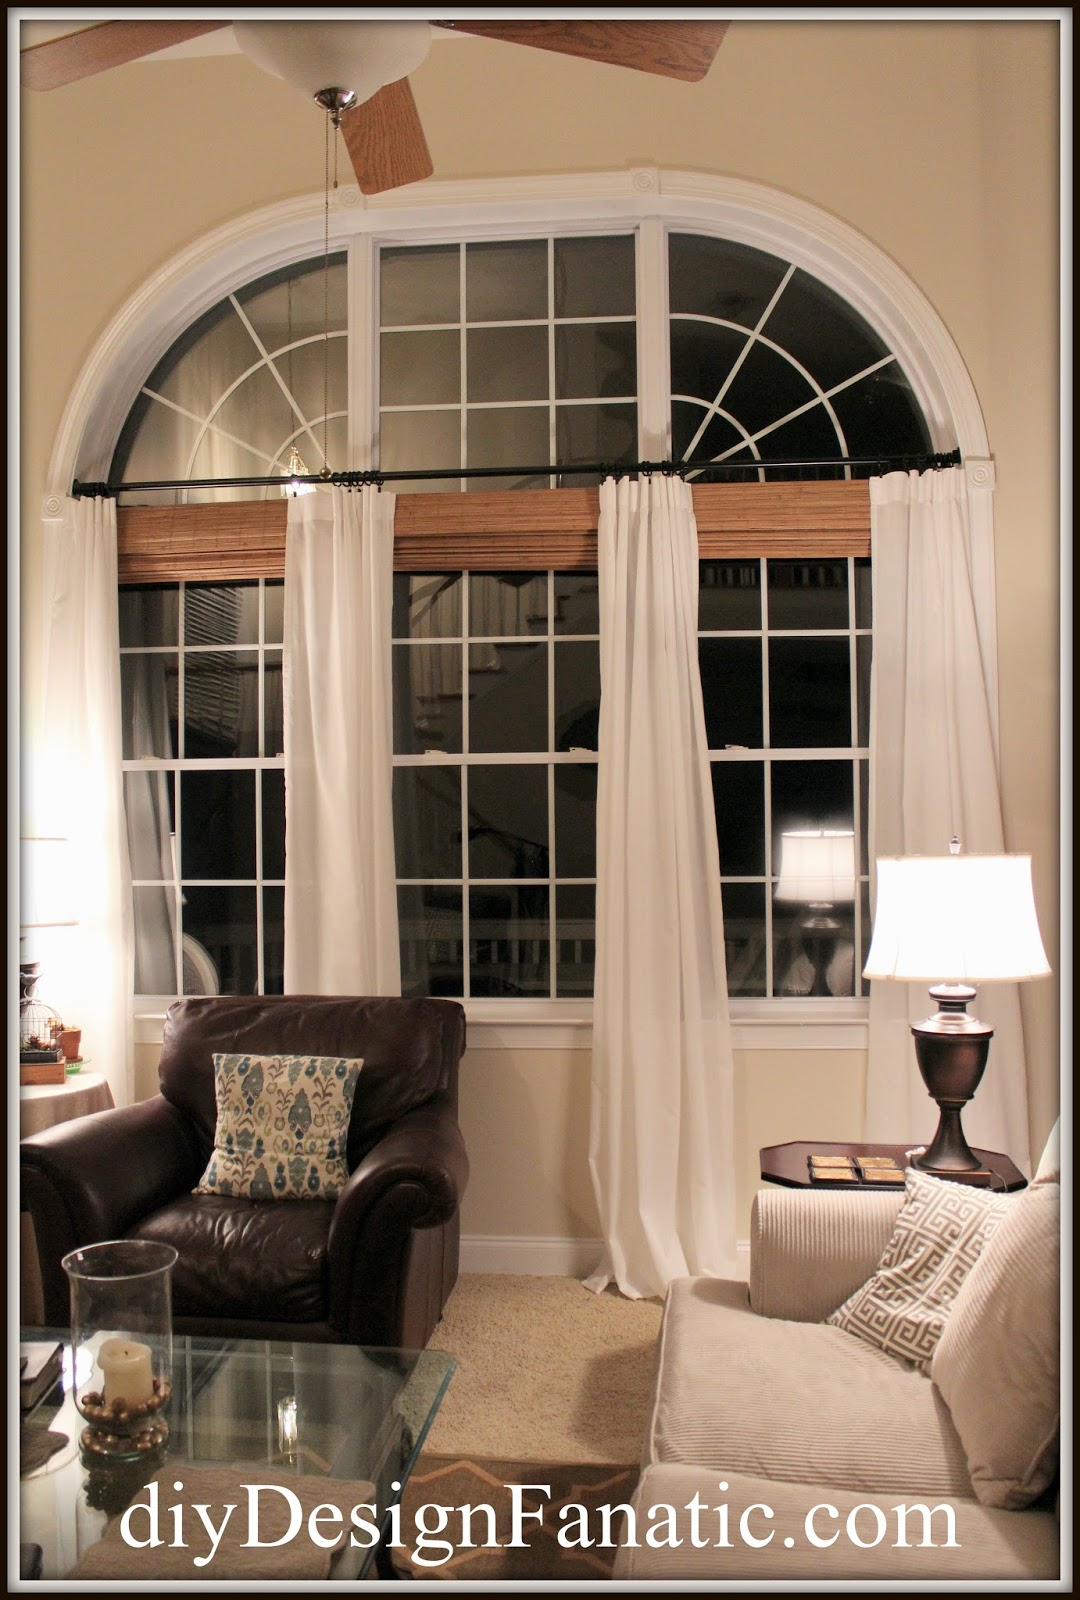 Diy design fanatic: new window treatments for the family room